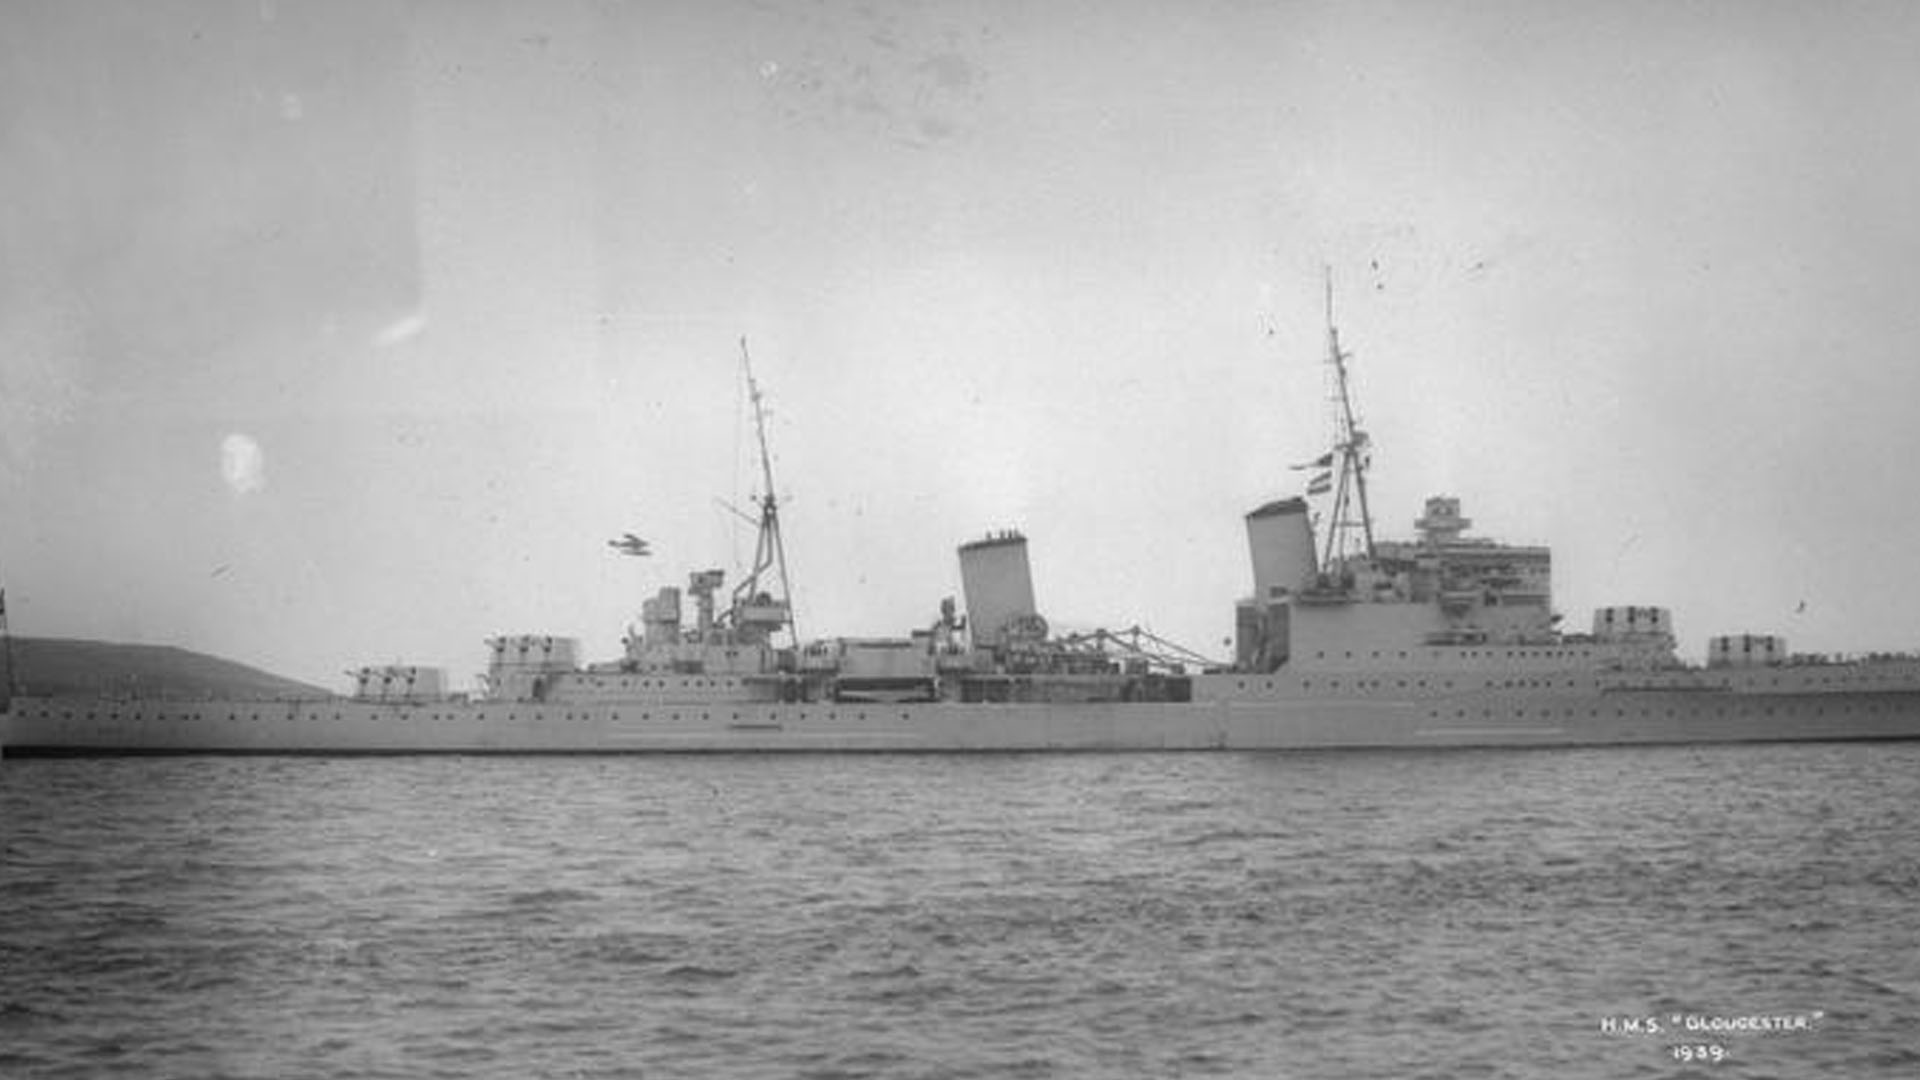 HMS Gloucester in Plymouth, 1939